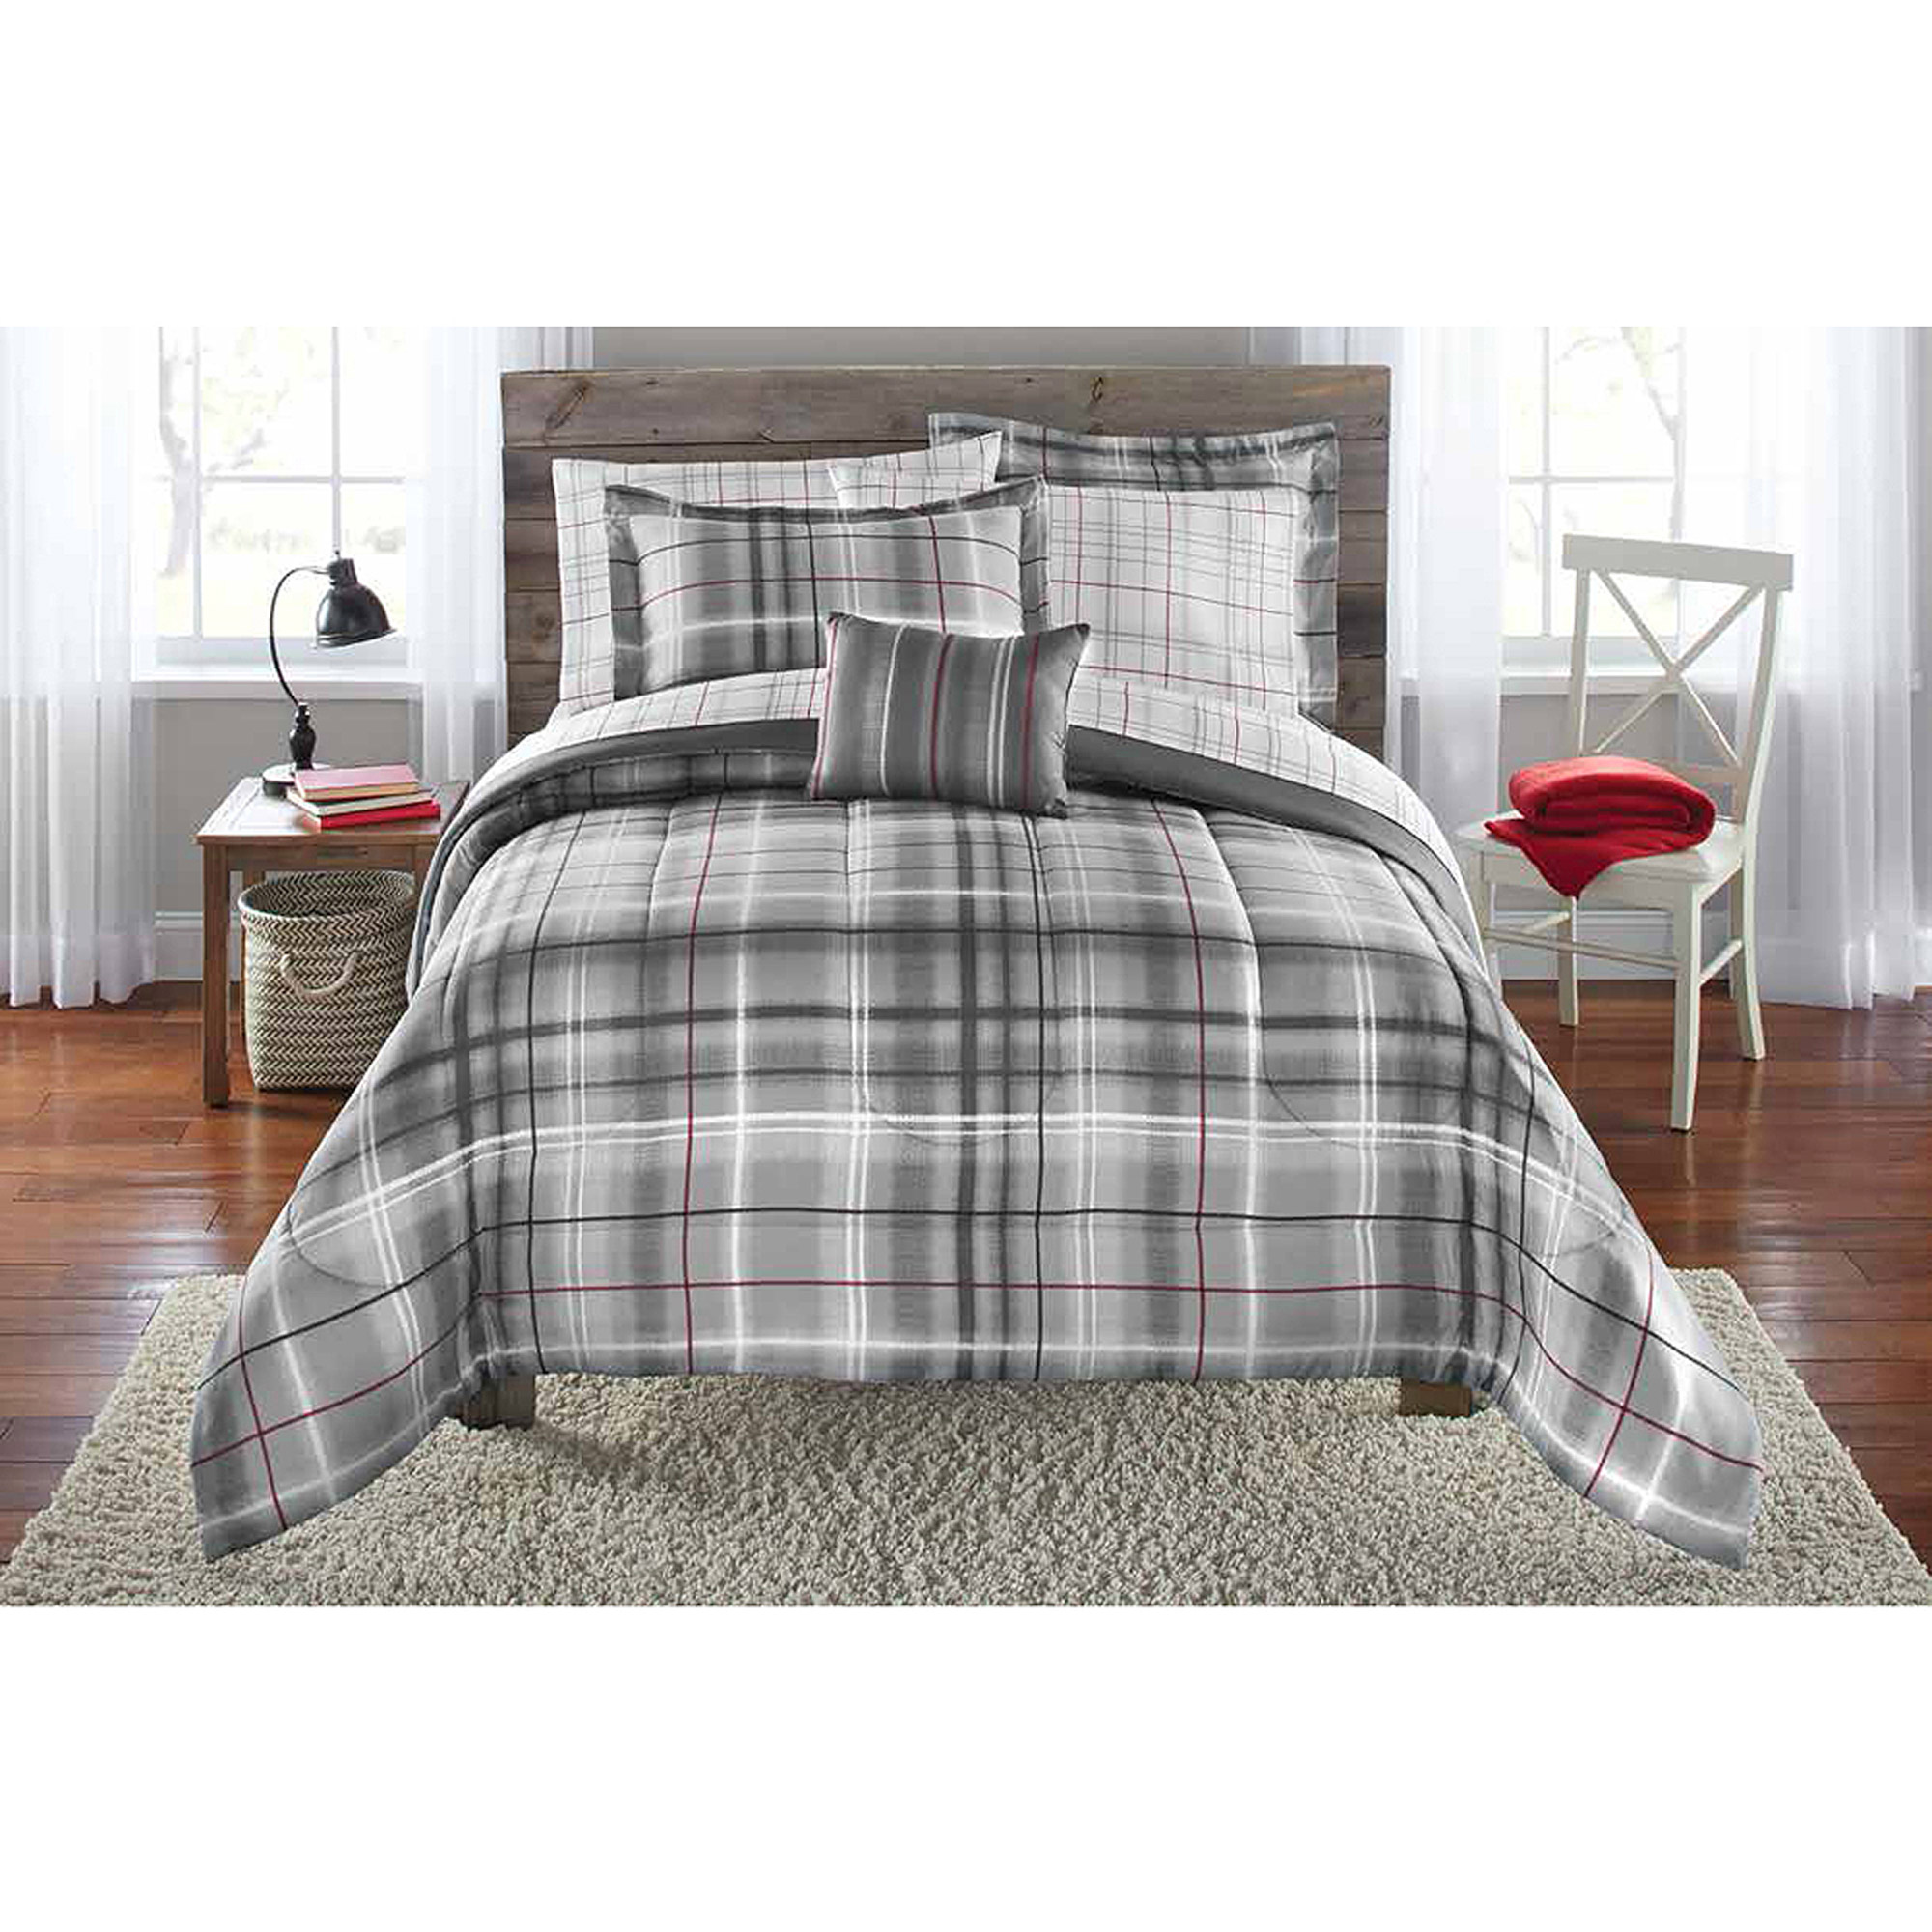 Mainstays Bed-in-a-Bag Bedding Comforter Set, Grey Plaid